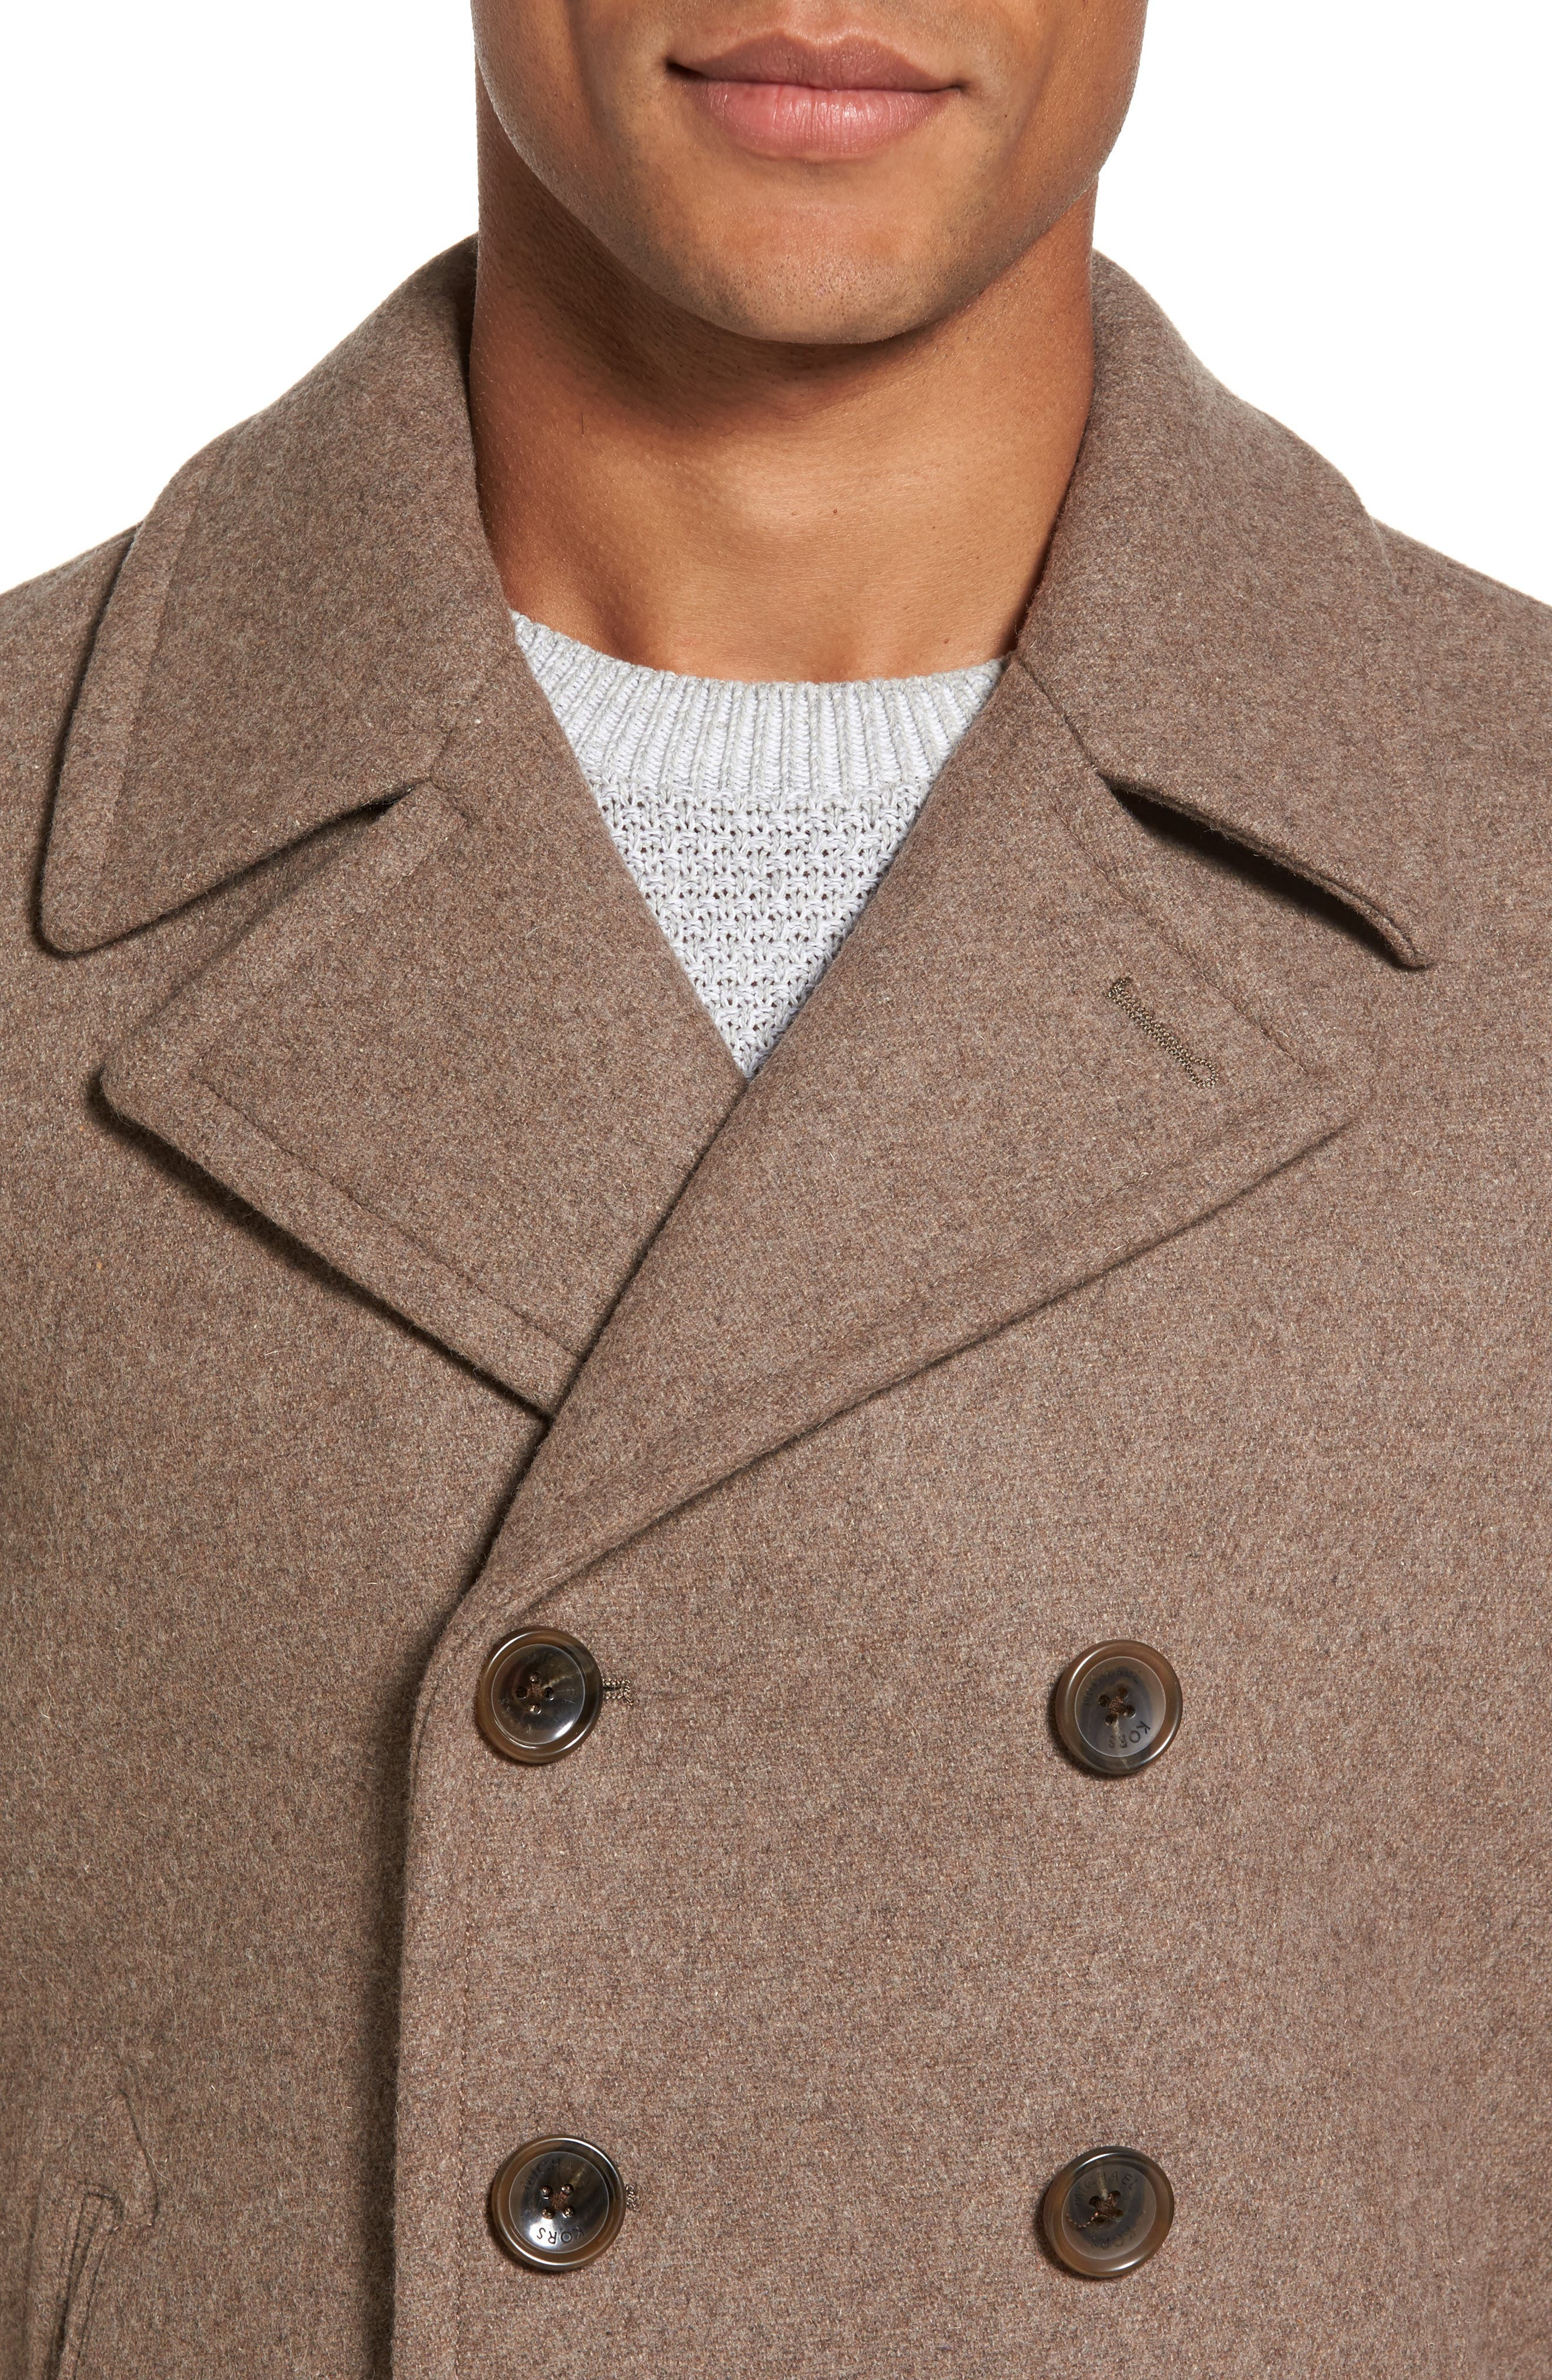 Wool Blend Double Breasted Peacoat,                             Alternate thumbnail 62, color,